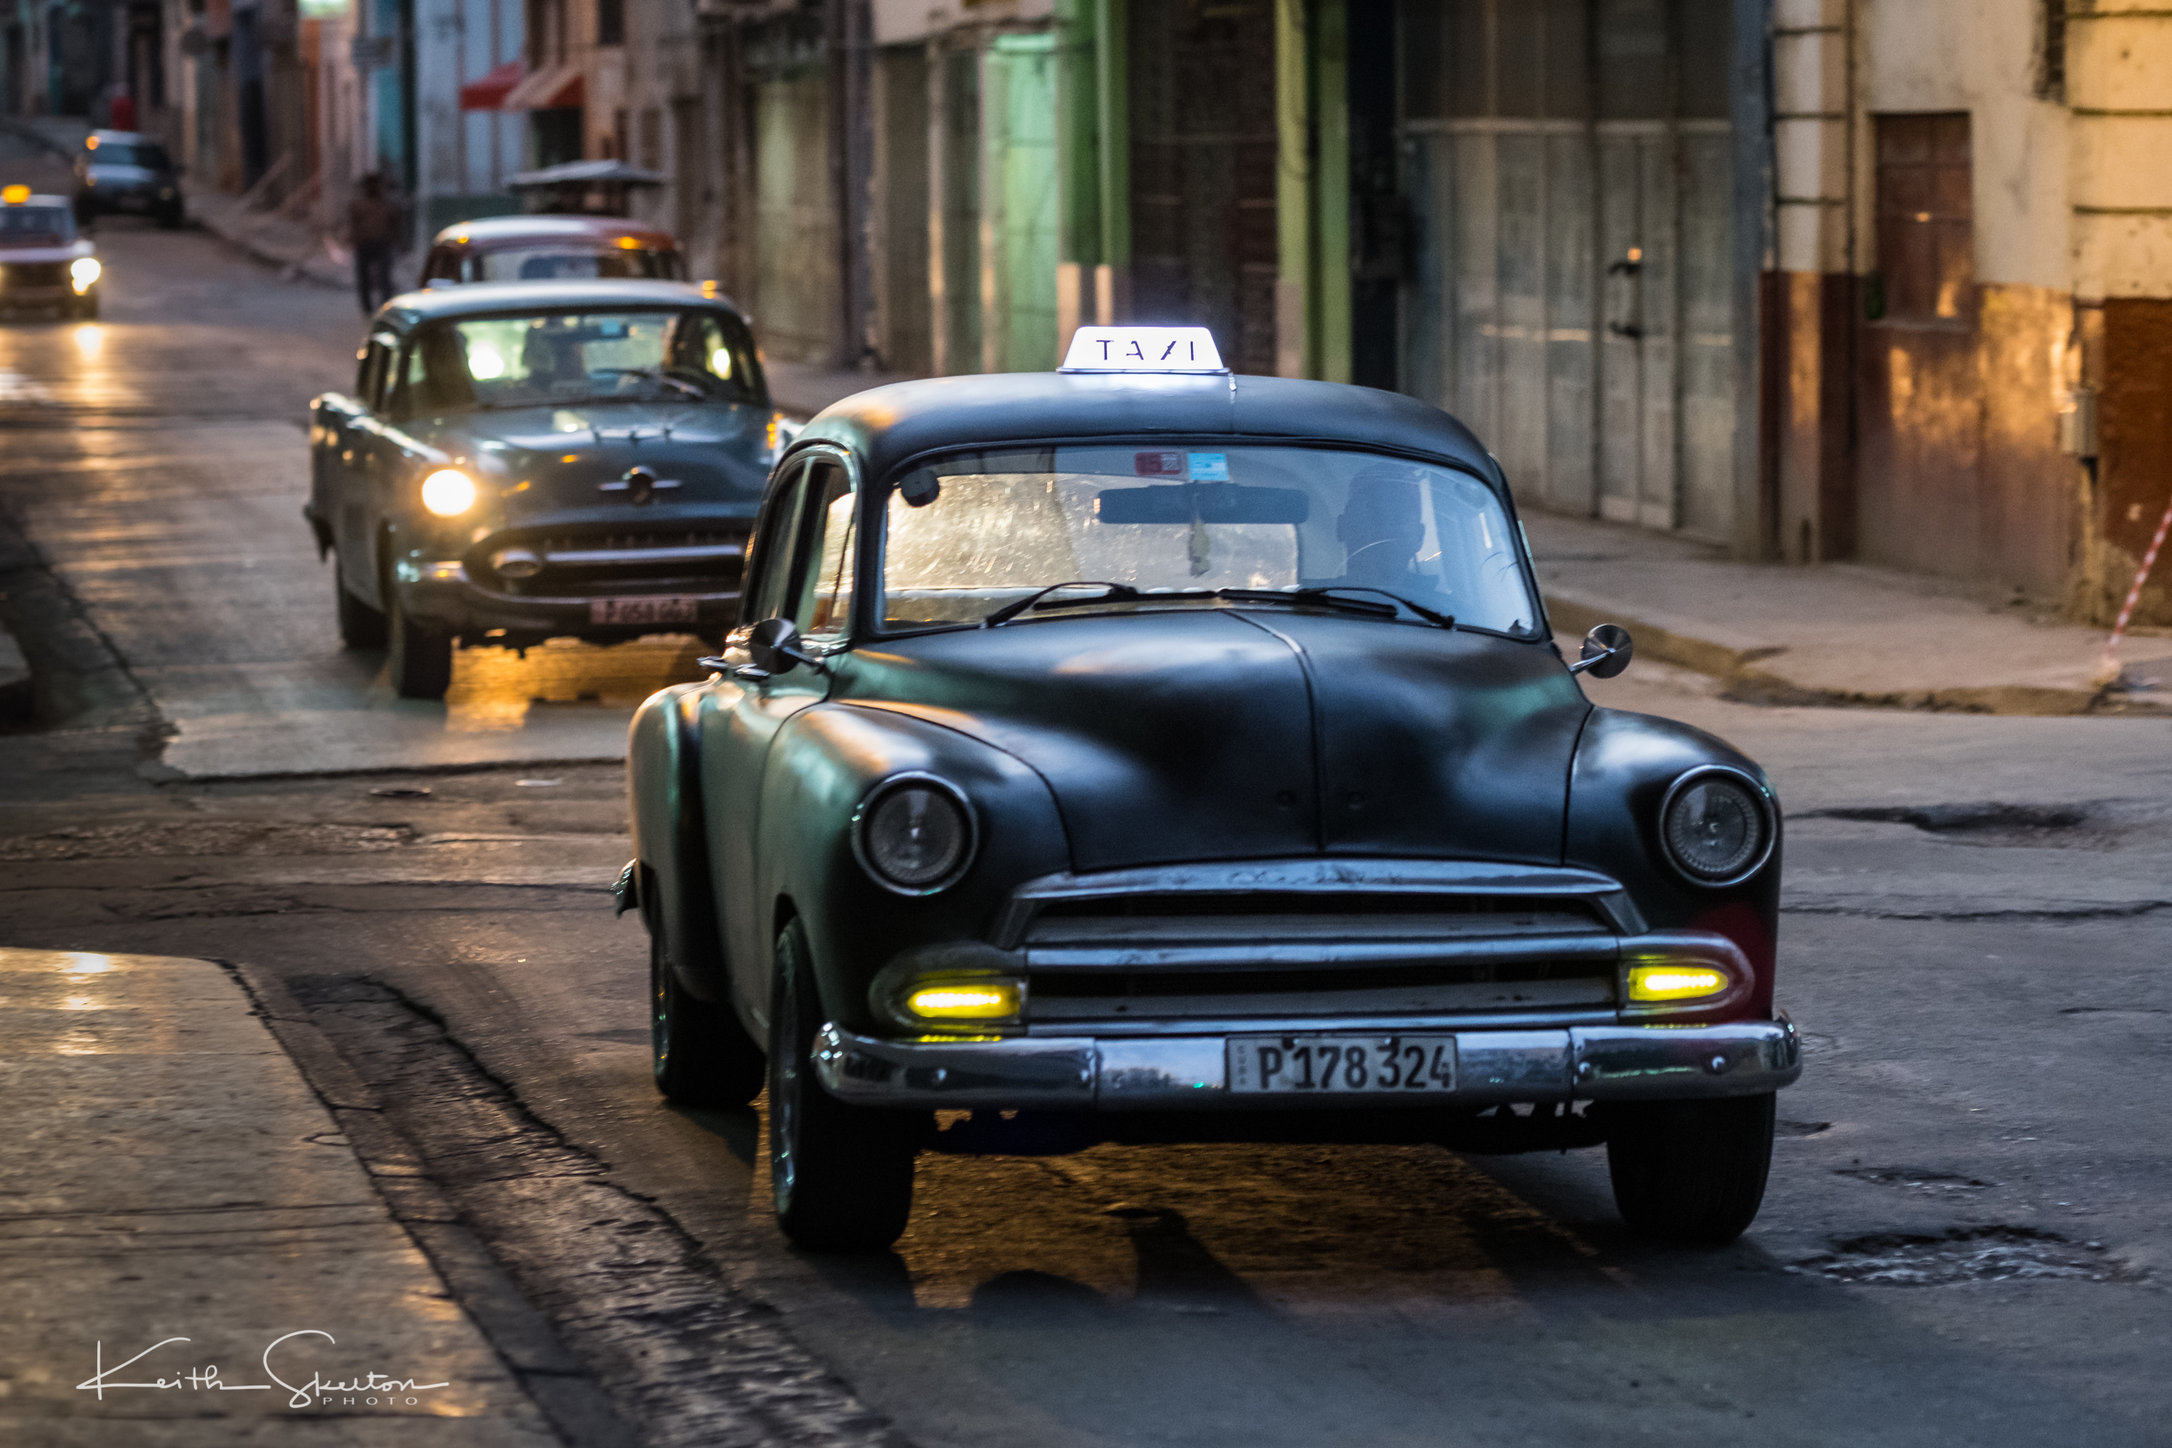 Keith Skelton Photo - CUBA-35.jpg